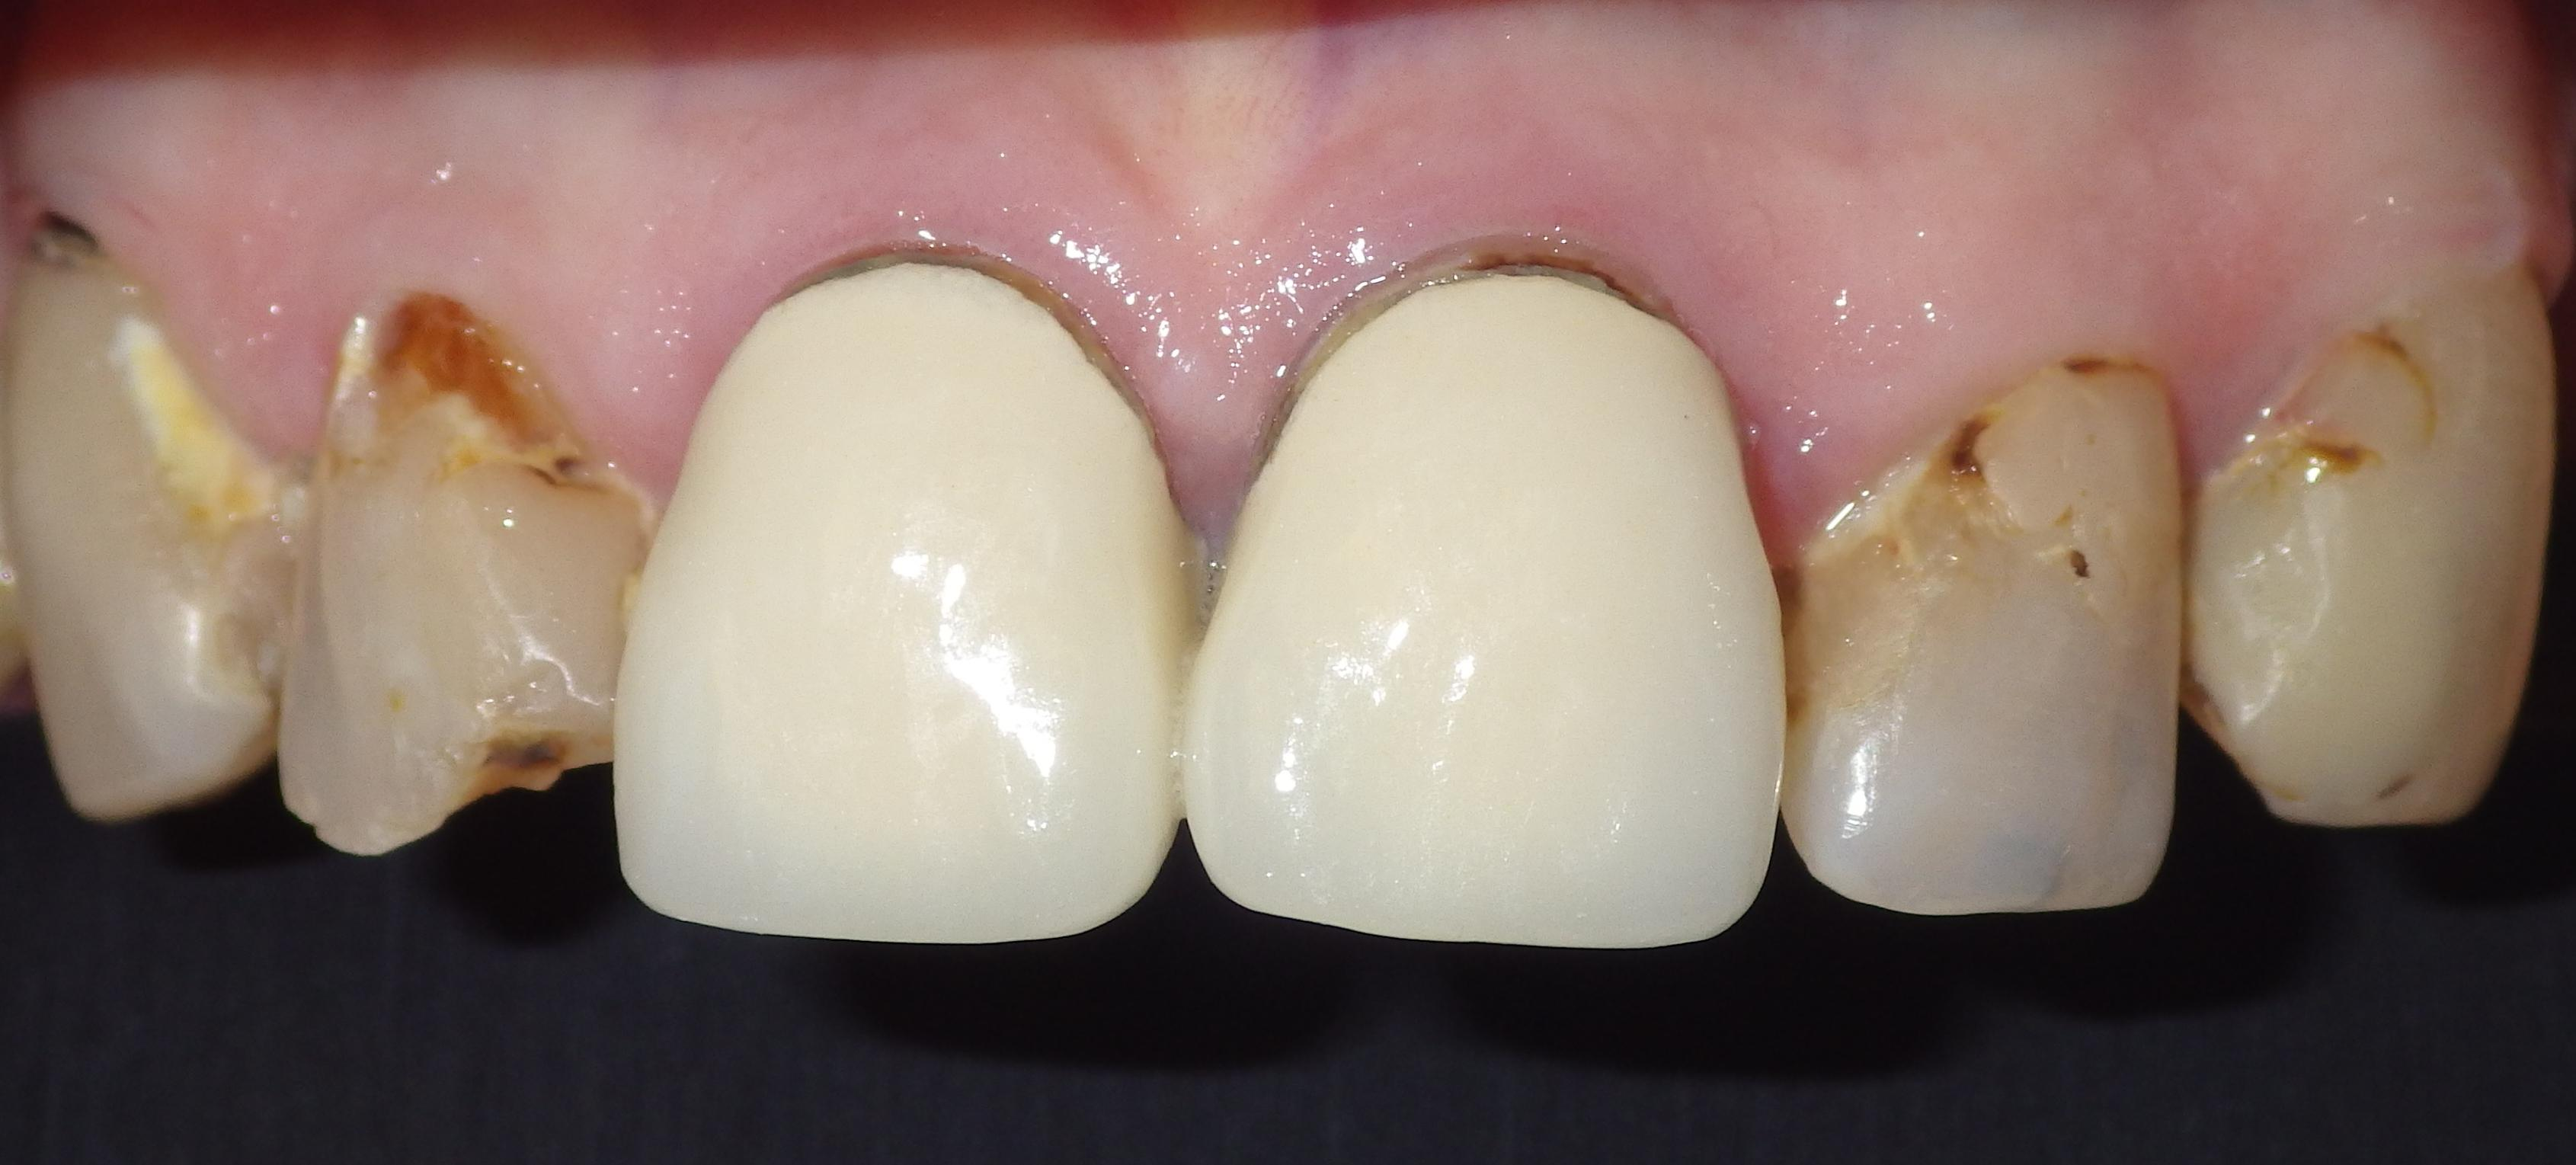 Dental crowns, porcelain crowns, cosmetic dentistry